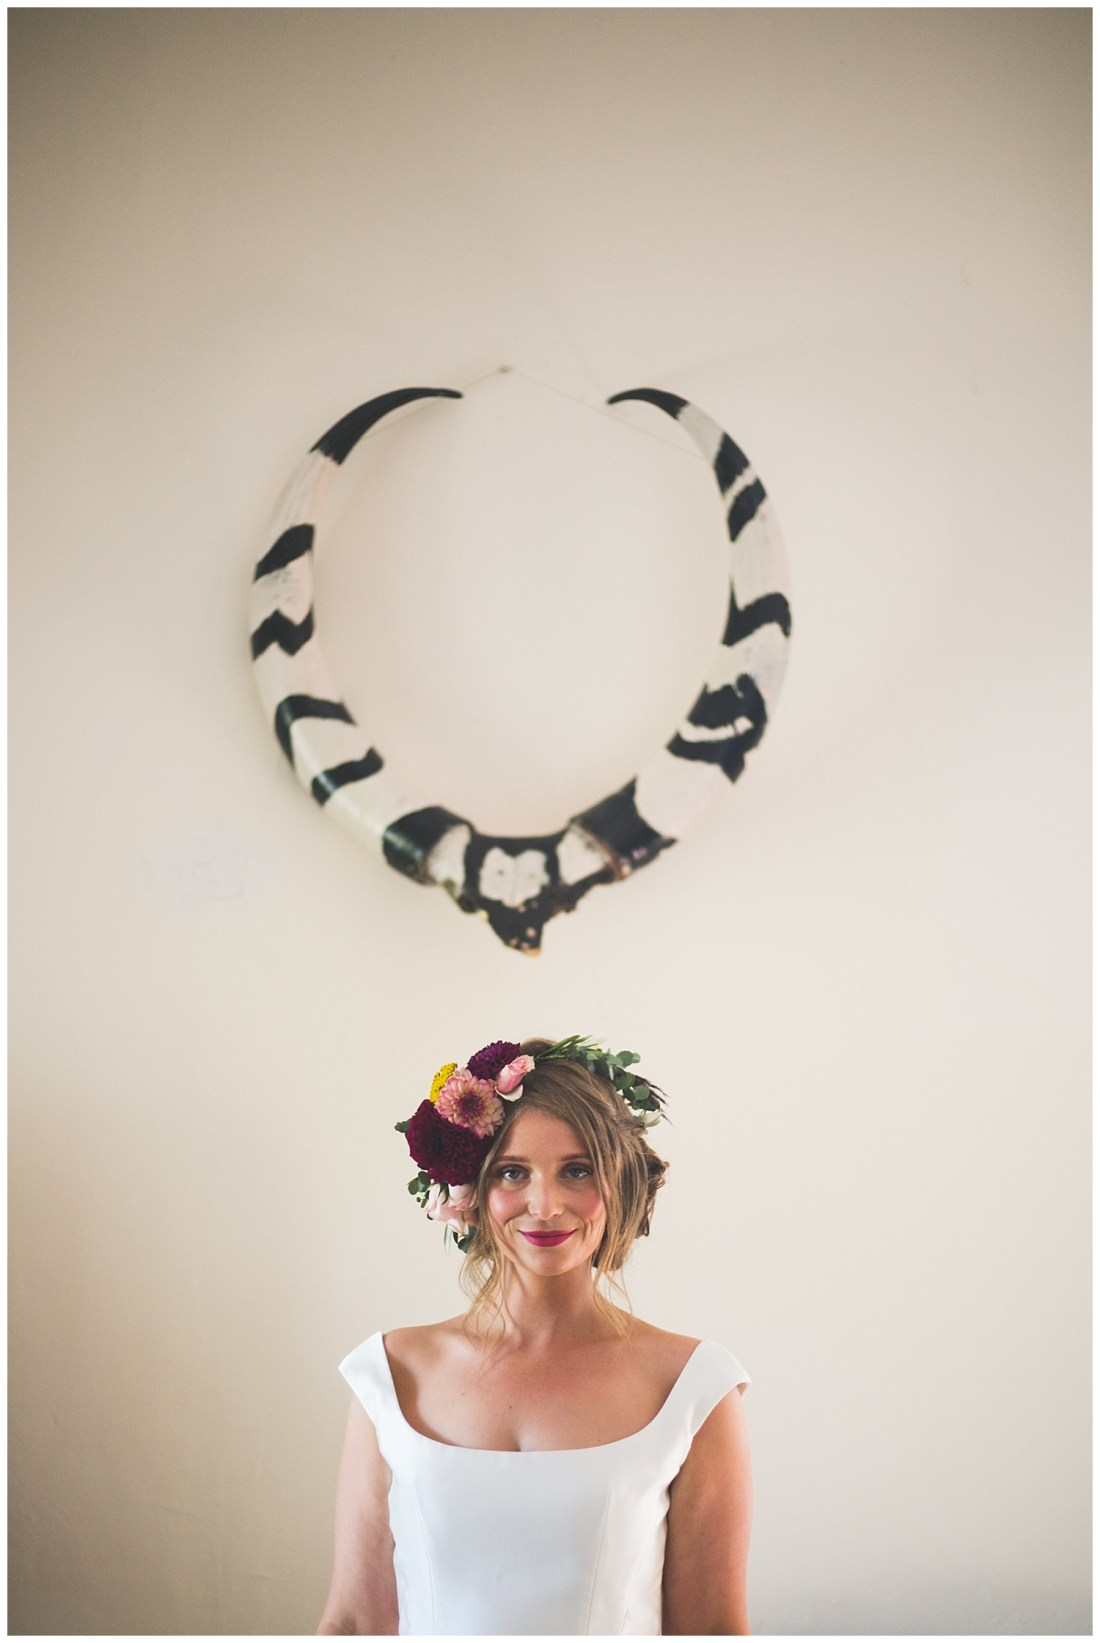 Portrait of a bride under Antlers - Wild Things Wed Photography